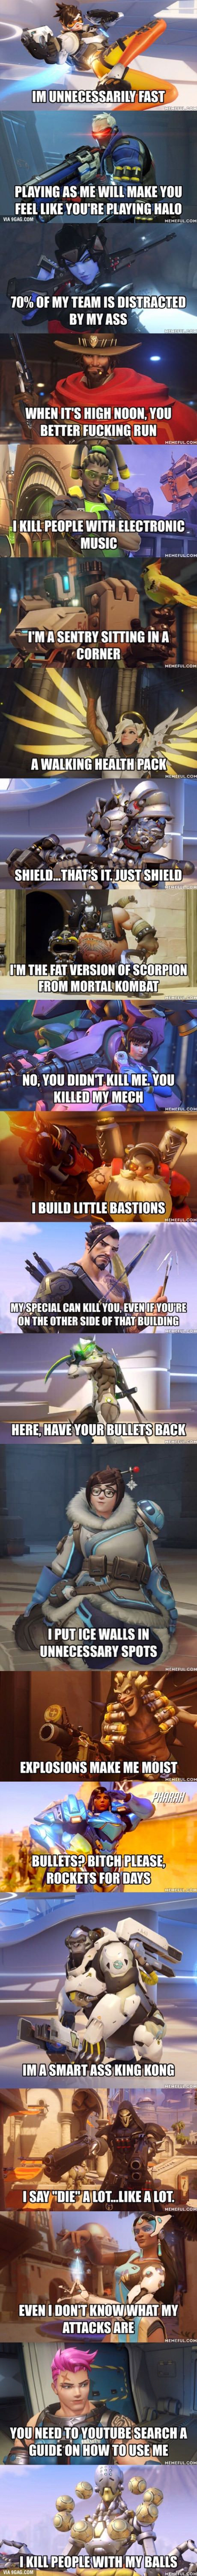 181 best images about Overwatch on Pinterest | Overwatch reaper ...